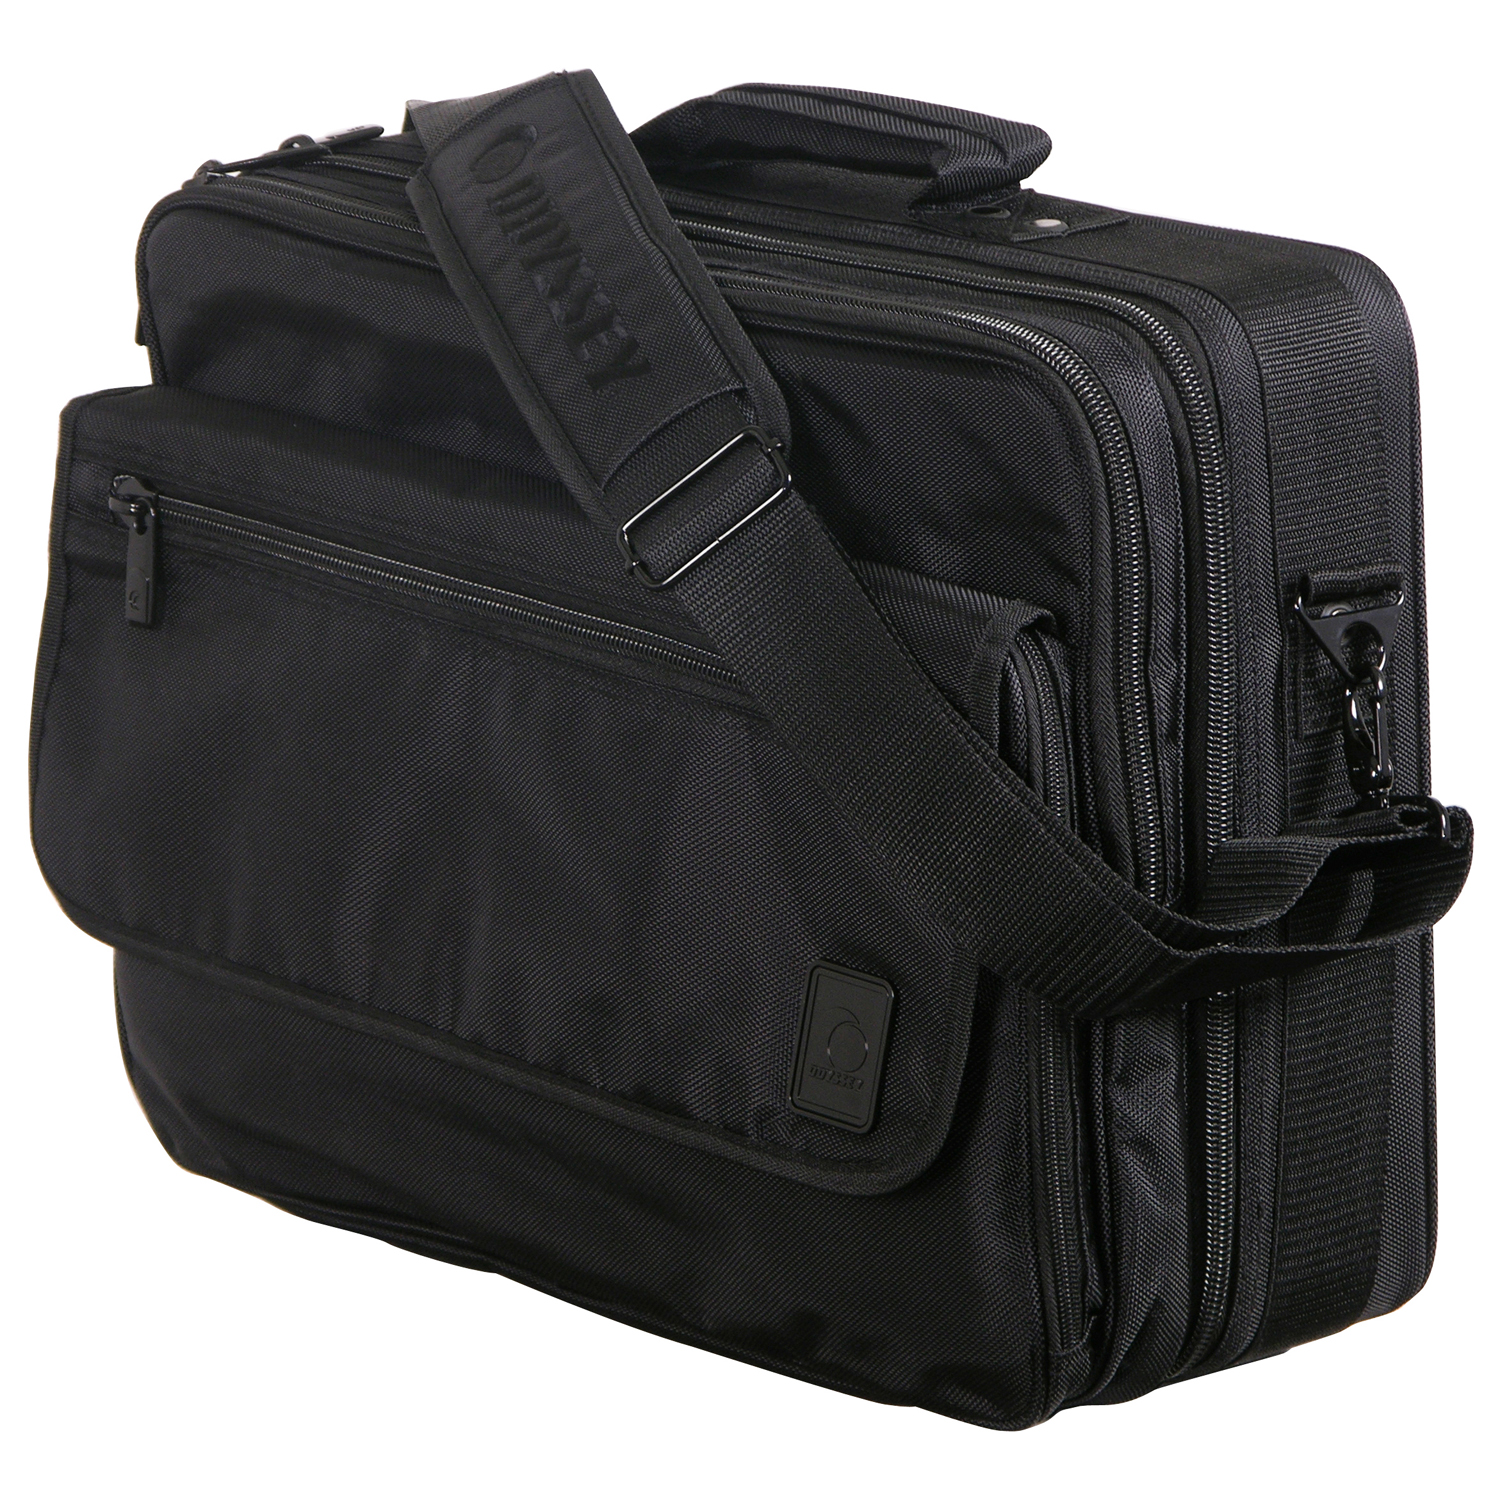 DJ Bag for your DJ Controller, Mixer or Media Player